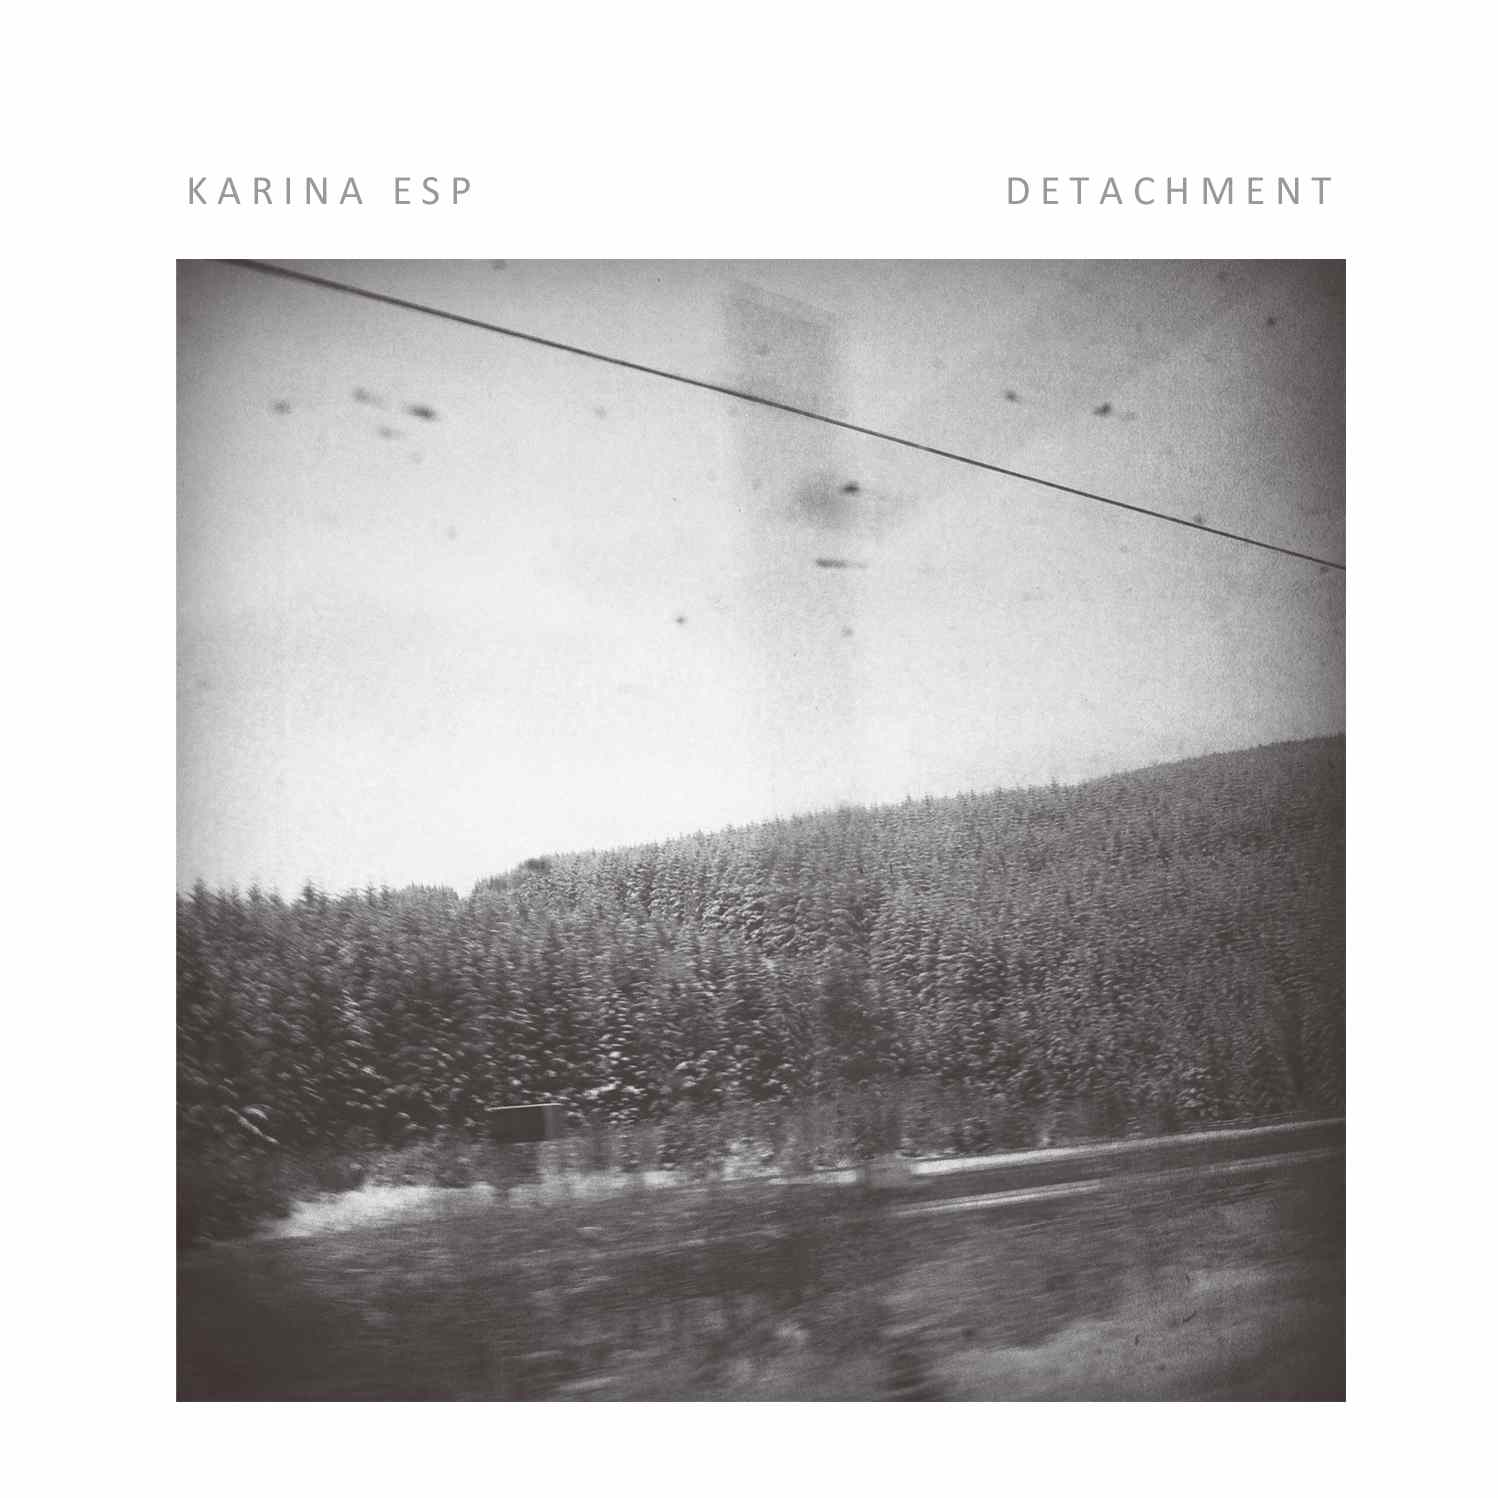 Karina ESP - Detachment